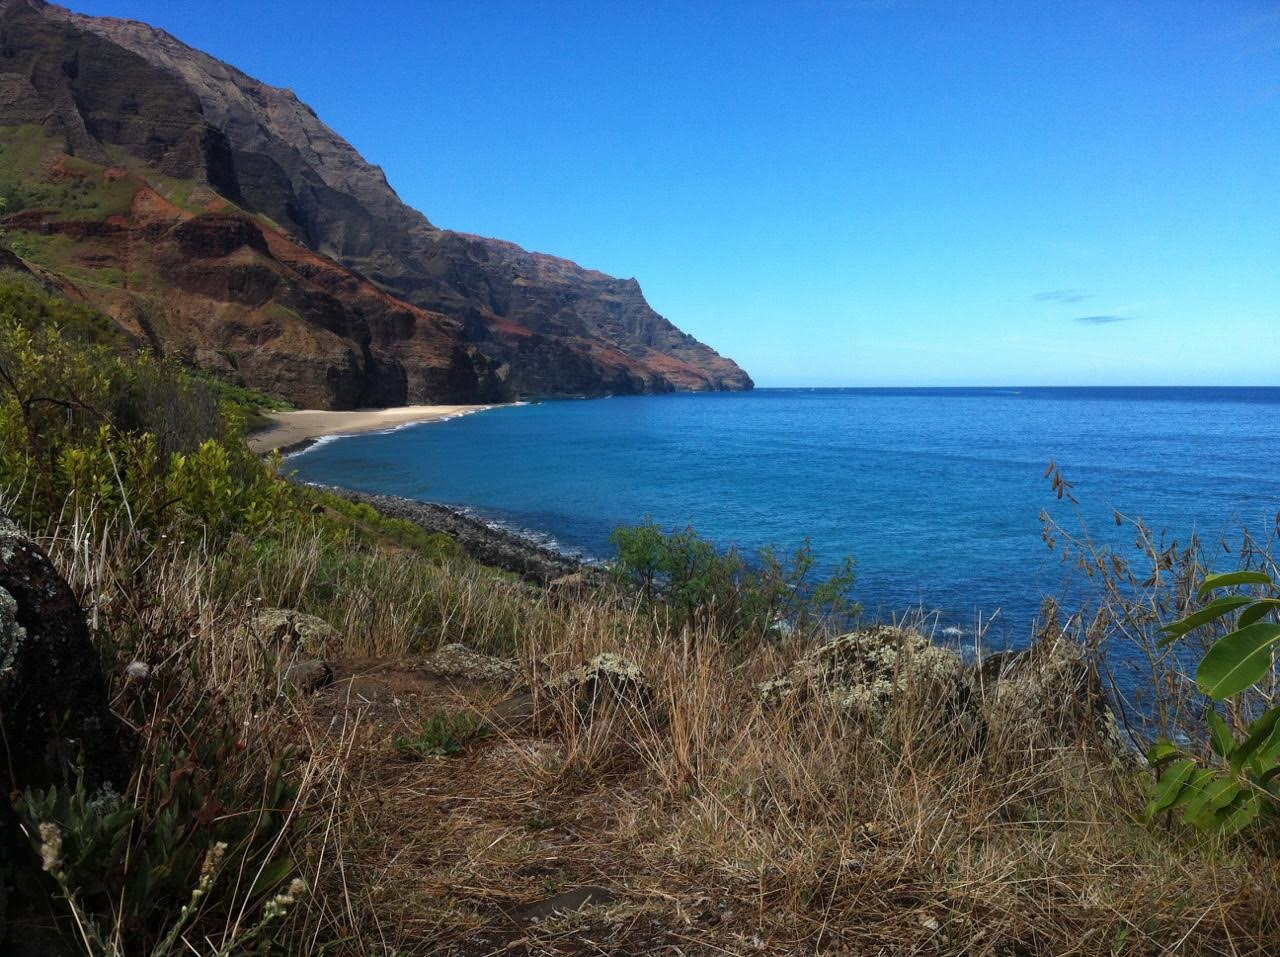 Most Romantic beaches on Kauai